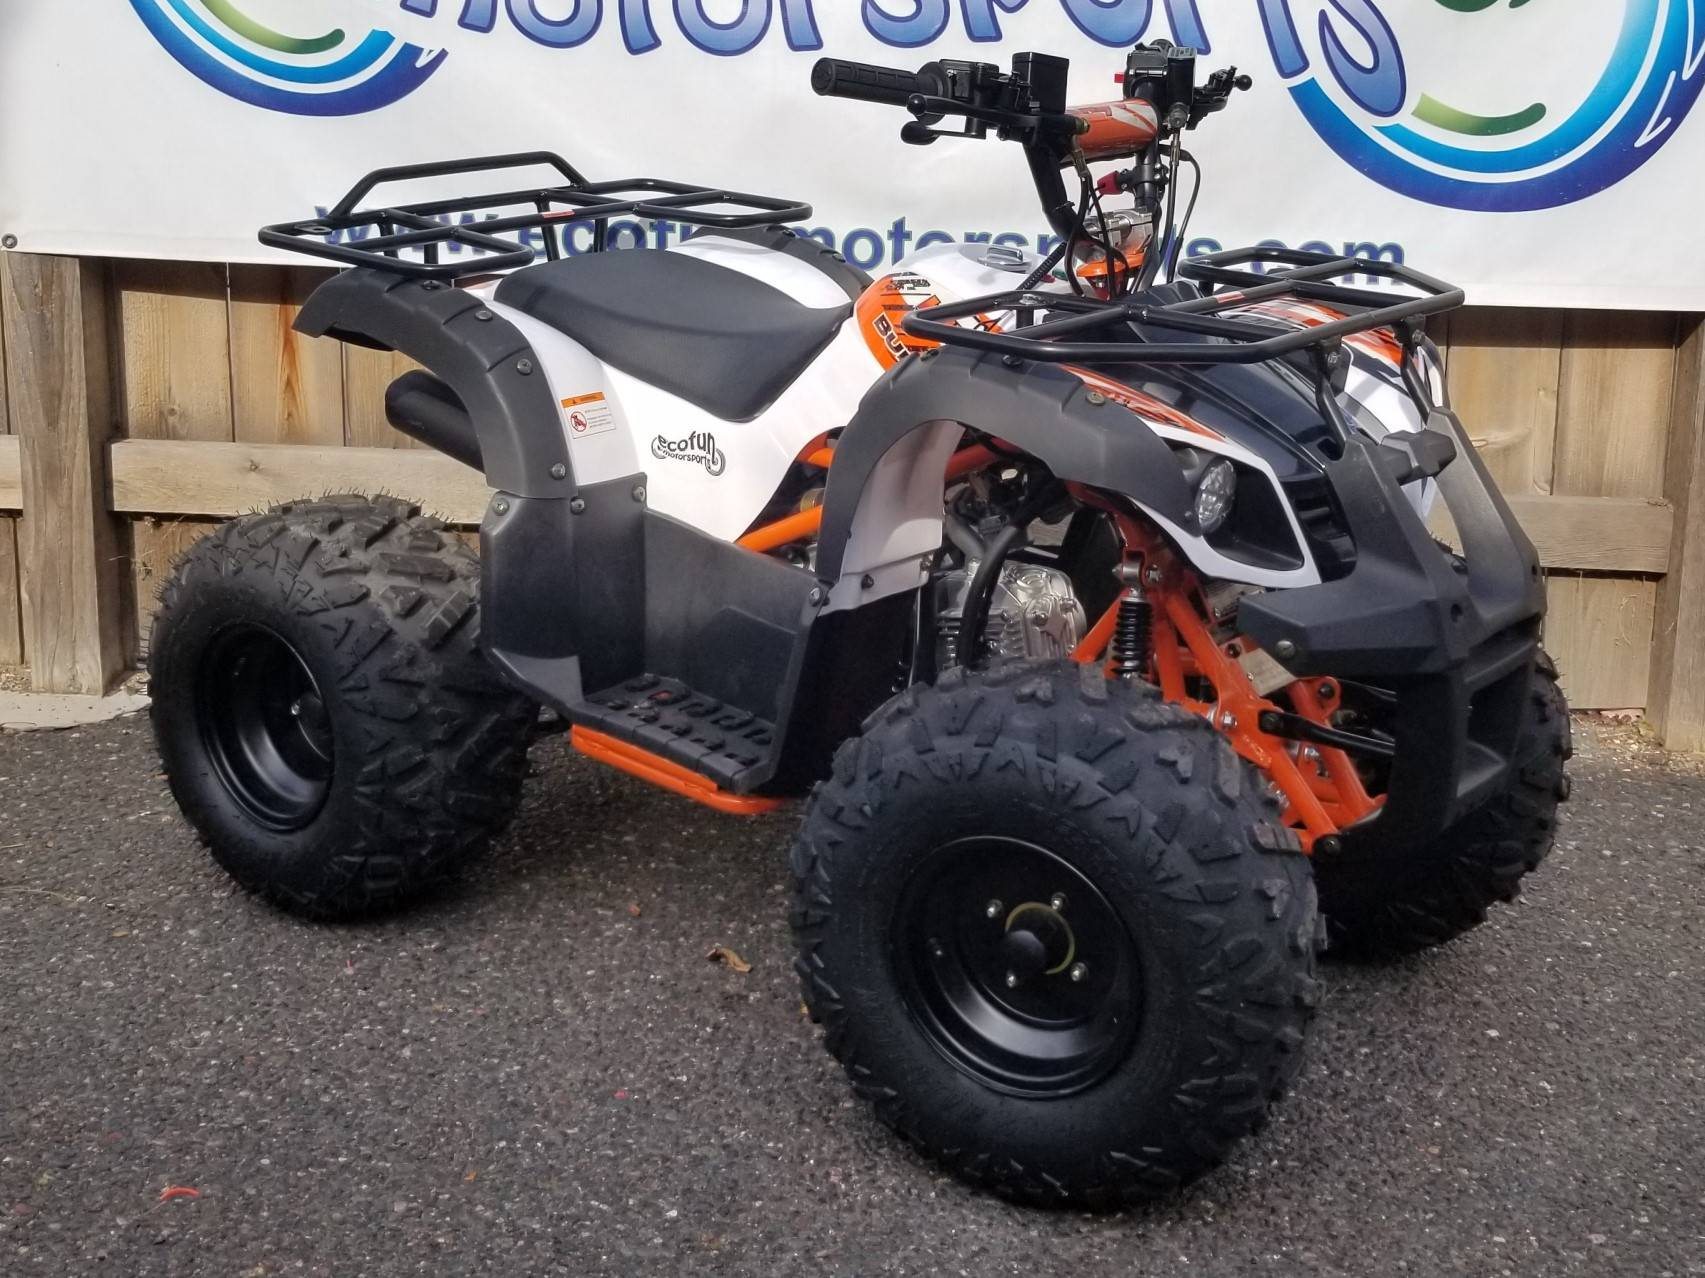 2020 Kayo USA Bull 125 ATV in Forest Lake, Minnesota - Photo 1